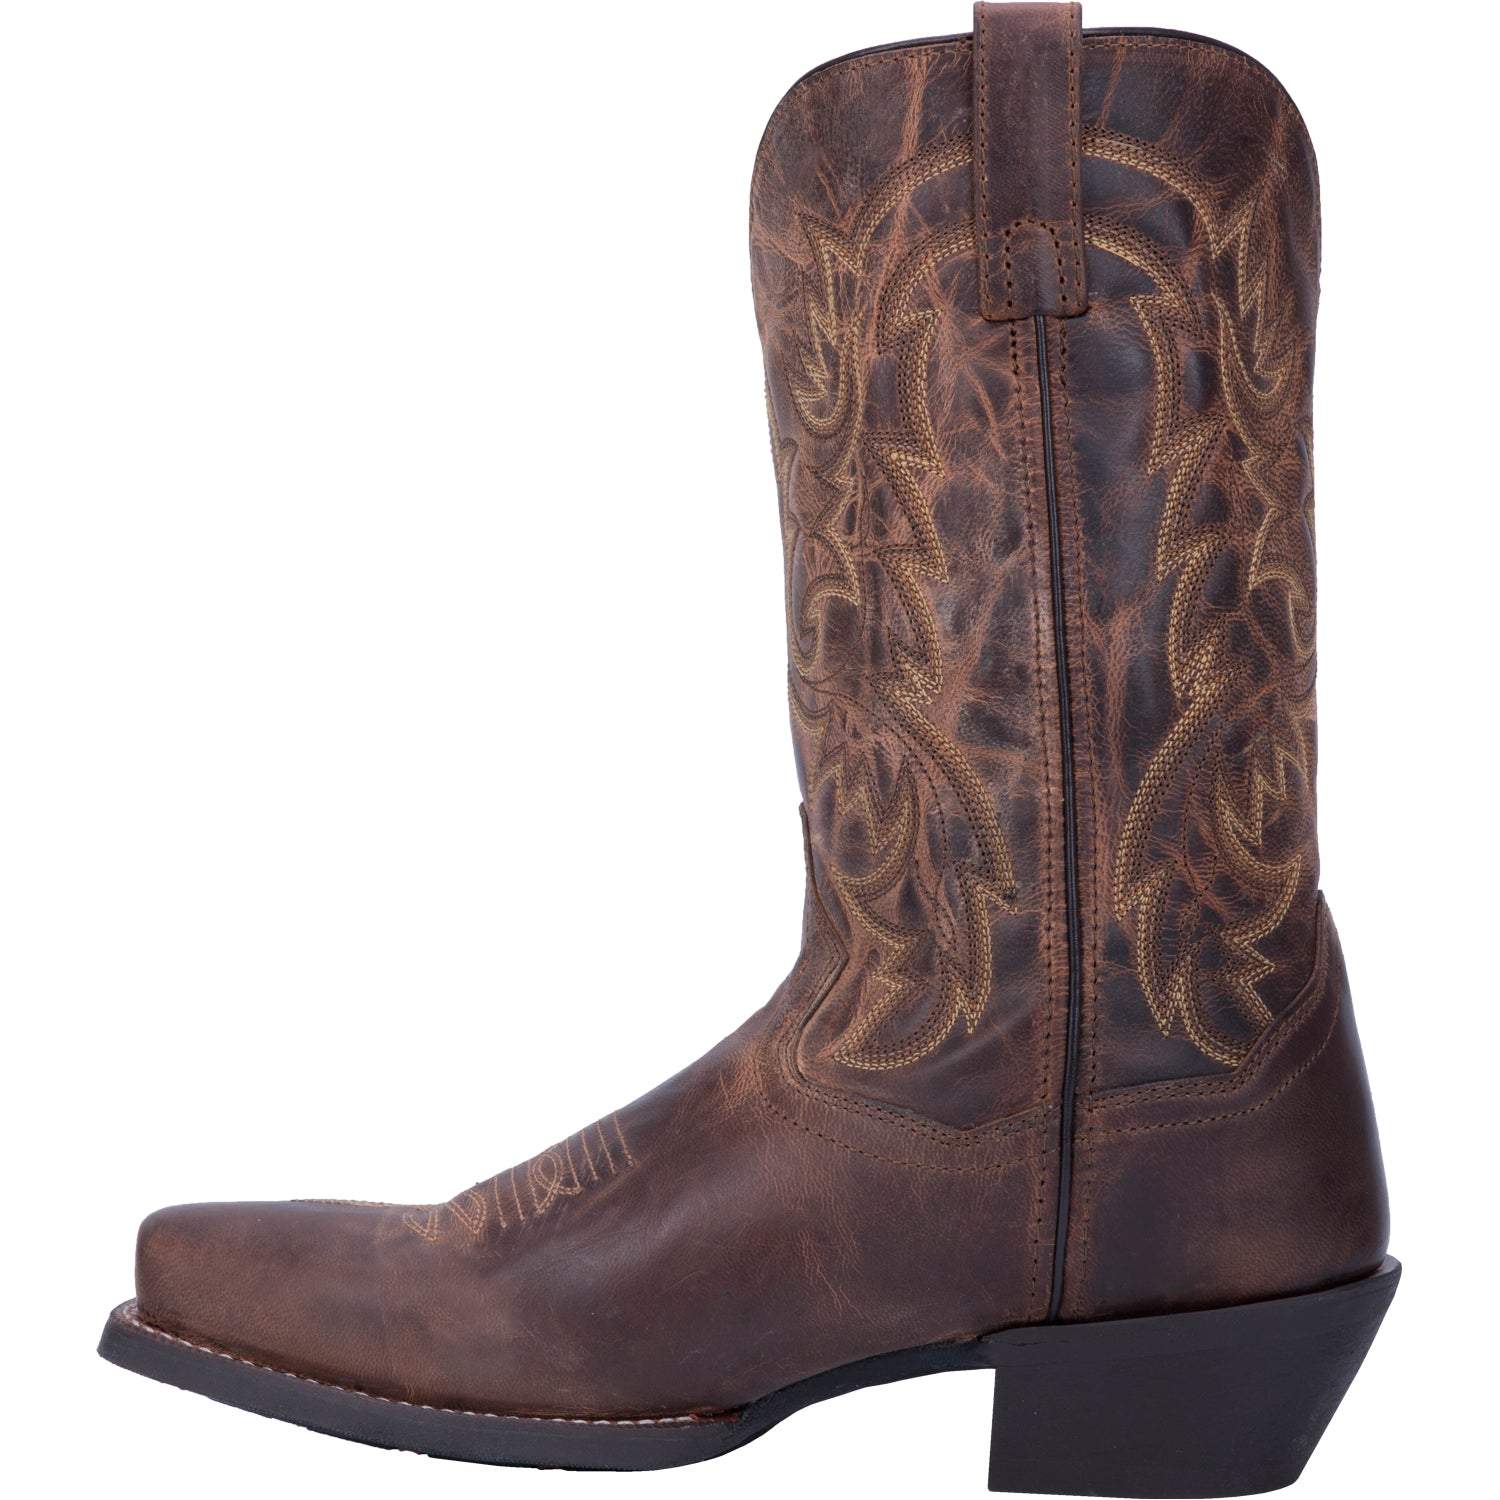 BRYCE LEATHER BOOT 4194446868522